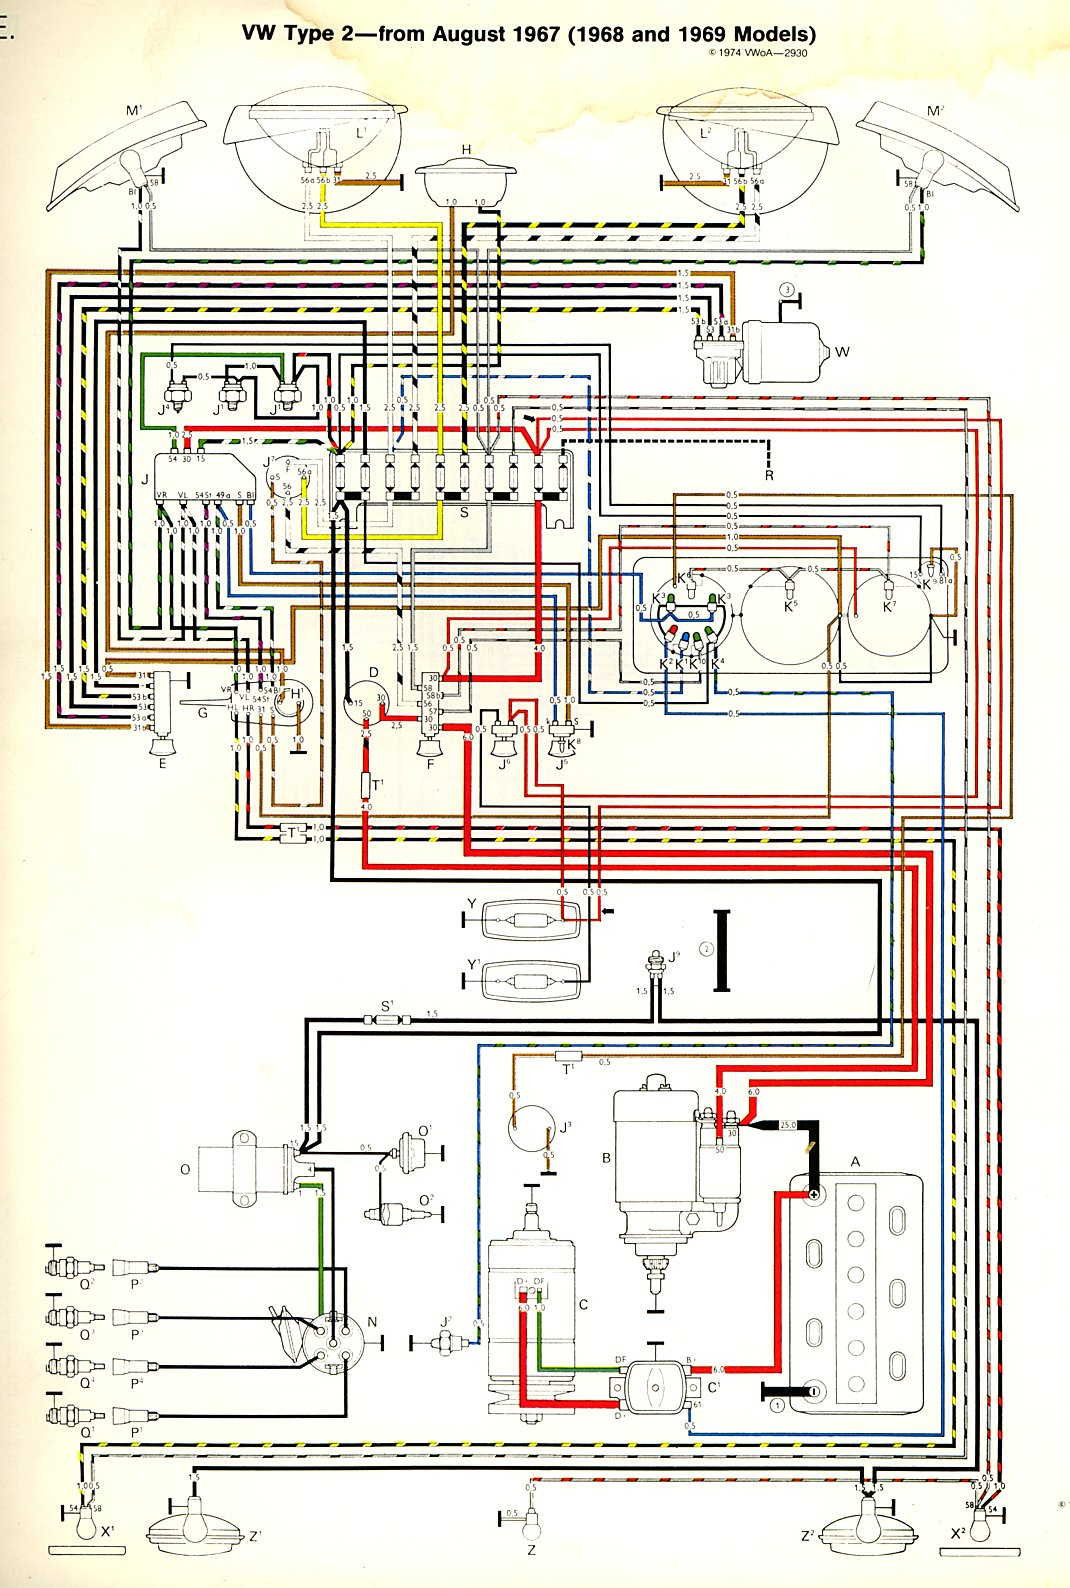 baybus_6869a 1968 69 bus wiring diagram thegoldenbug com wiring schematics at honlapkeszites.co